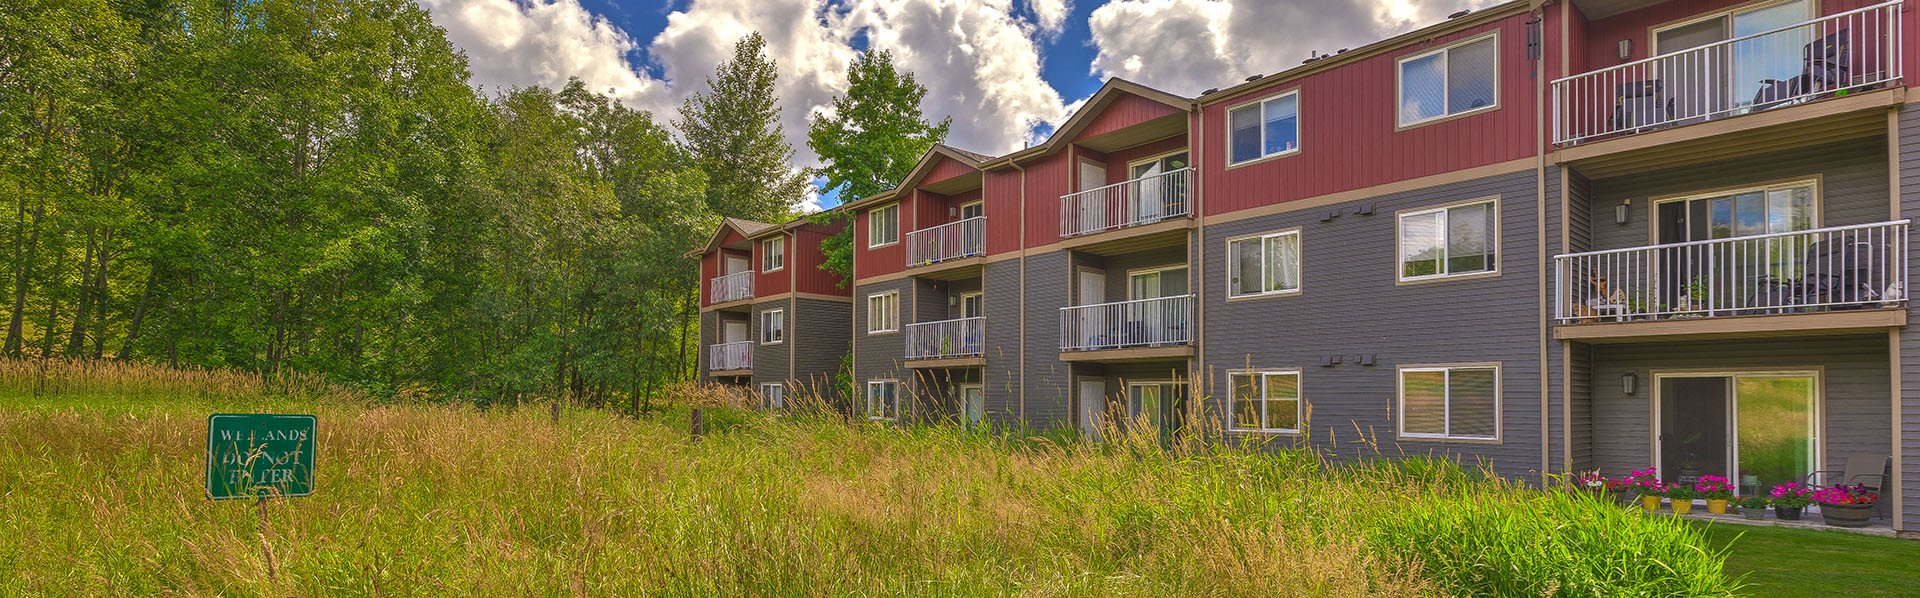 The Timbers by Vintage Apartment Homes in Arlington, WA 98223